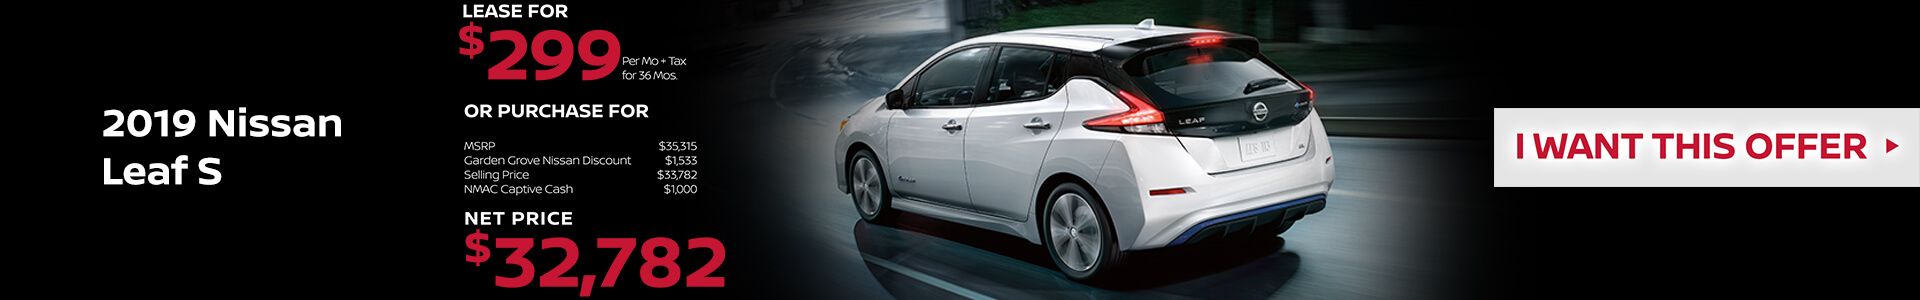 2019 Nissan Leaf Lease for $299